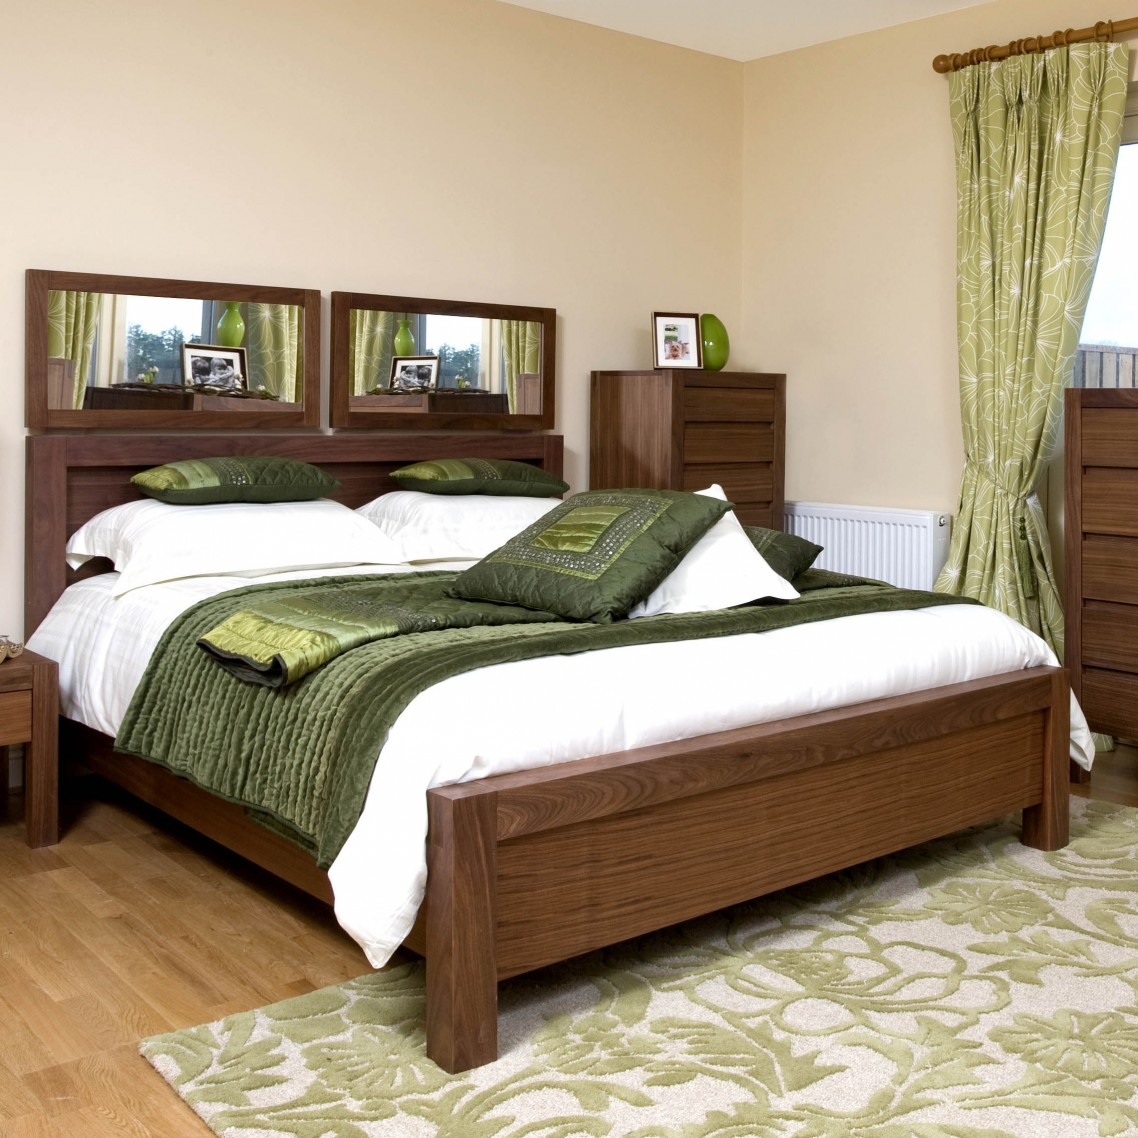 bedroom ideas brown furniture photo - 8